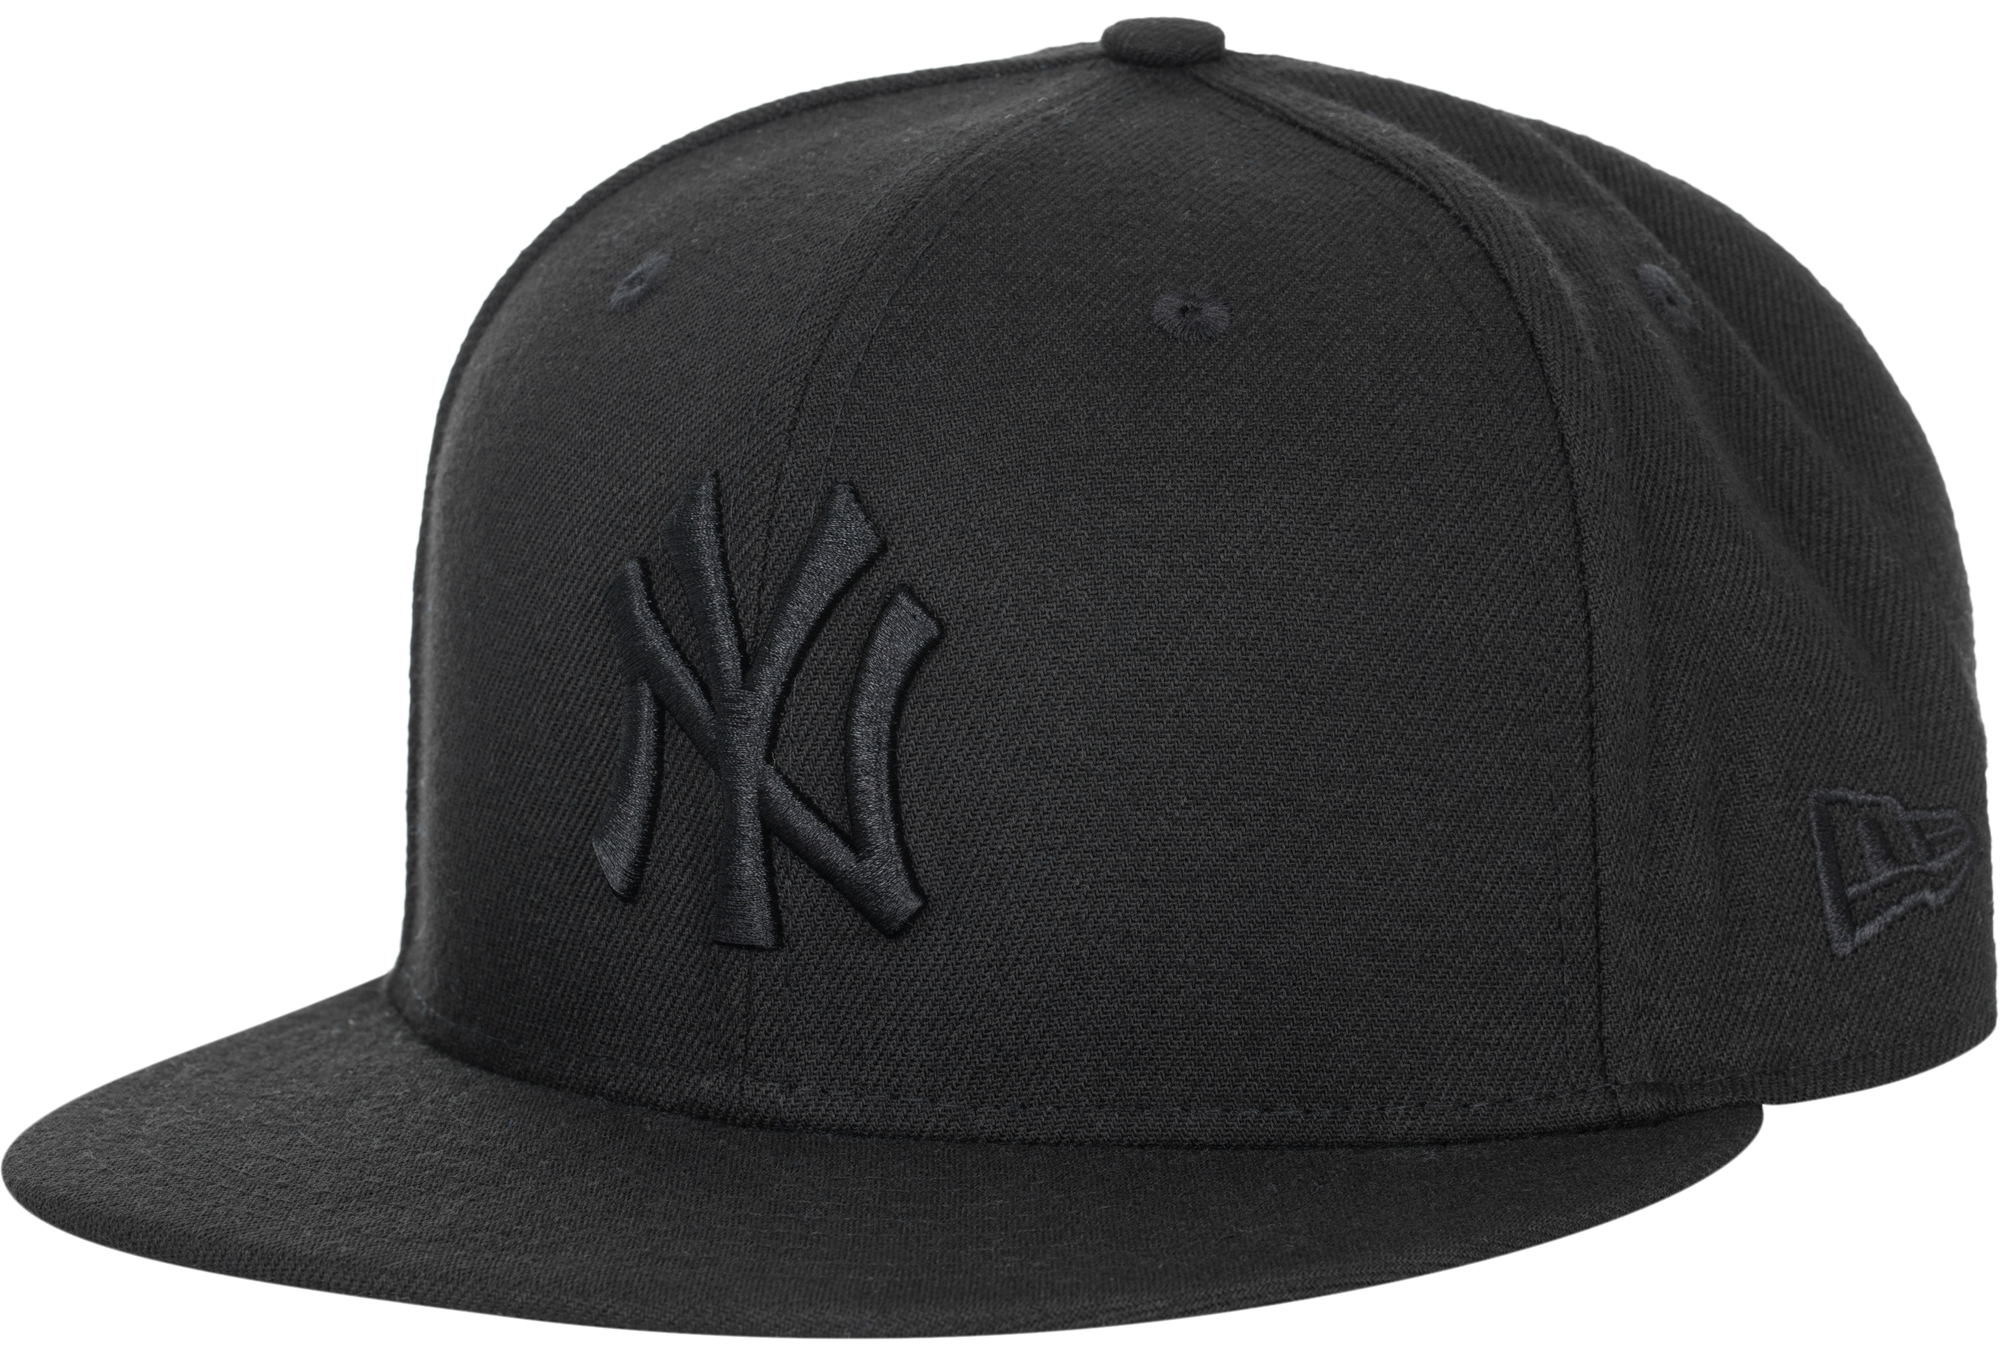 New Era Бейсболка New Era Sm League Basic 59Fifty Neyyan, размер 59